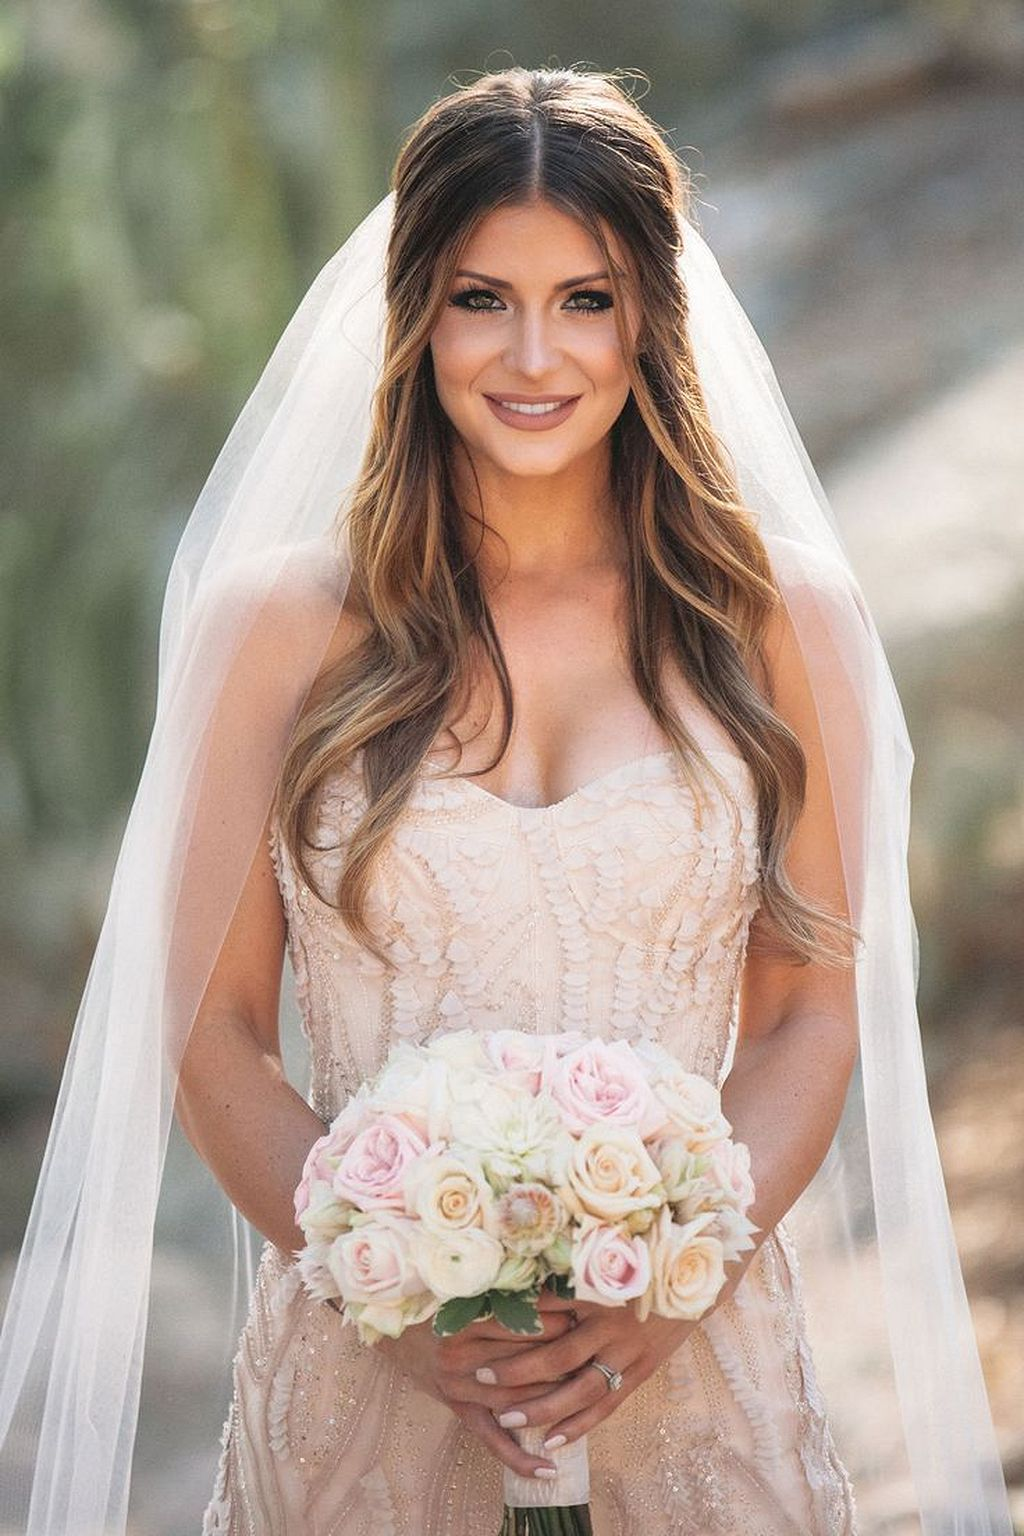 Great 40 wedding hair down with veil ideas httpsweddmagz40 great 40 wedding hair down with veil ideas httpsweddmagz junglespirit